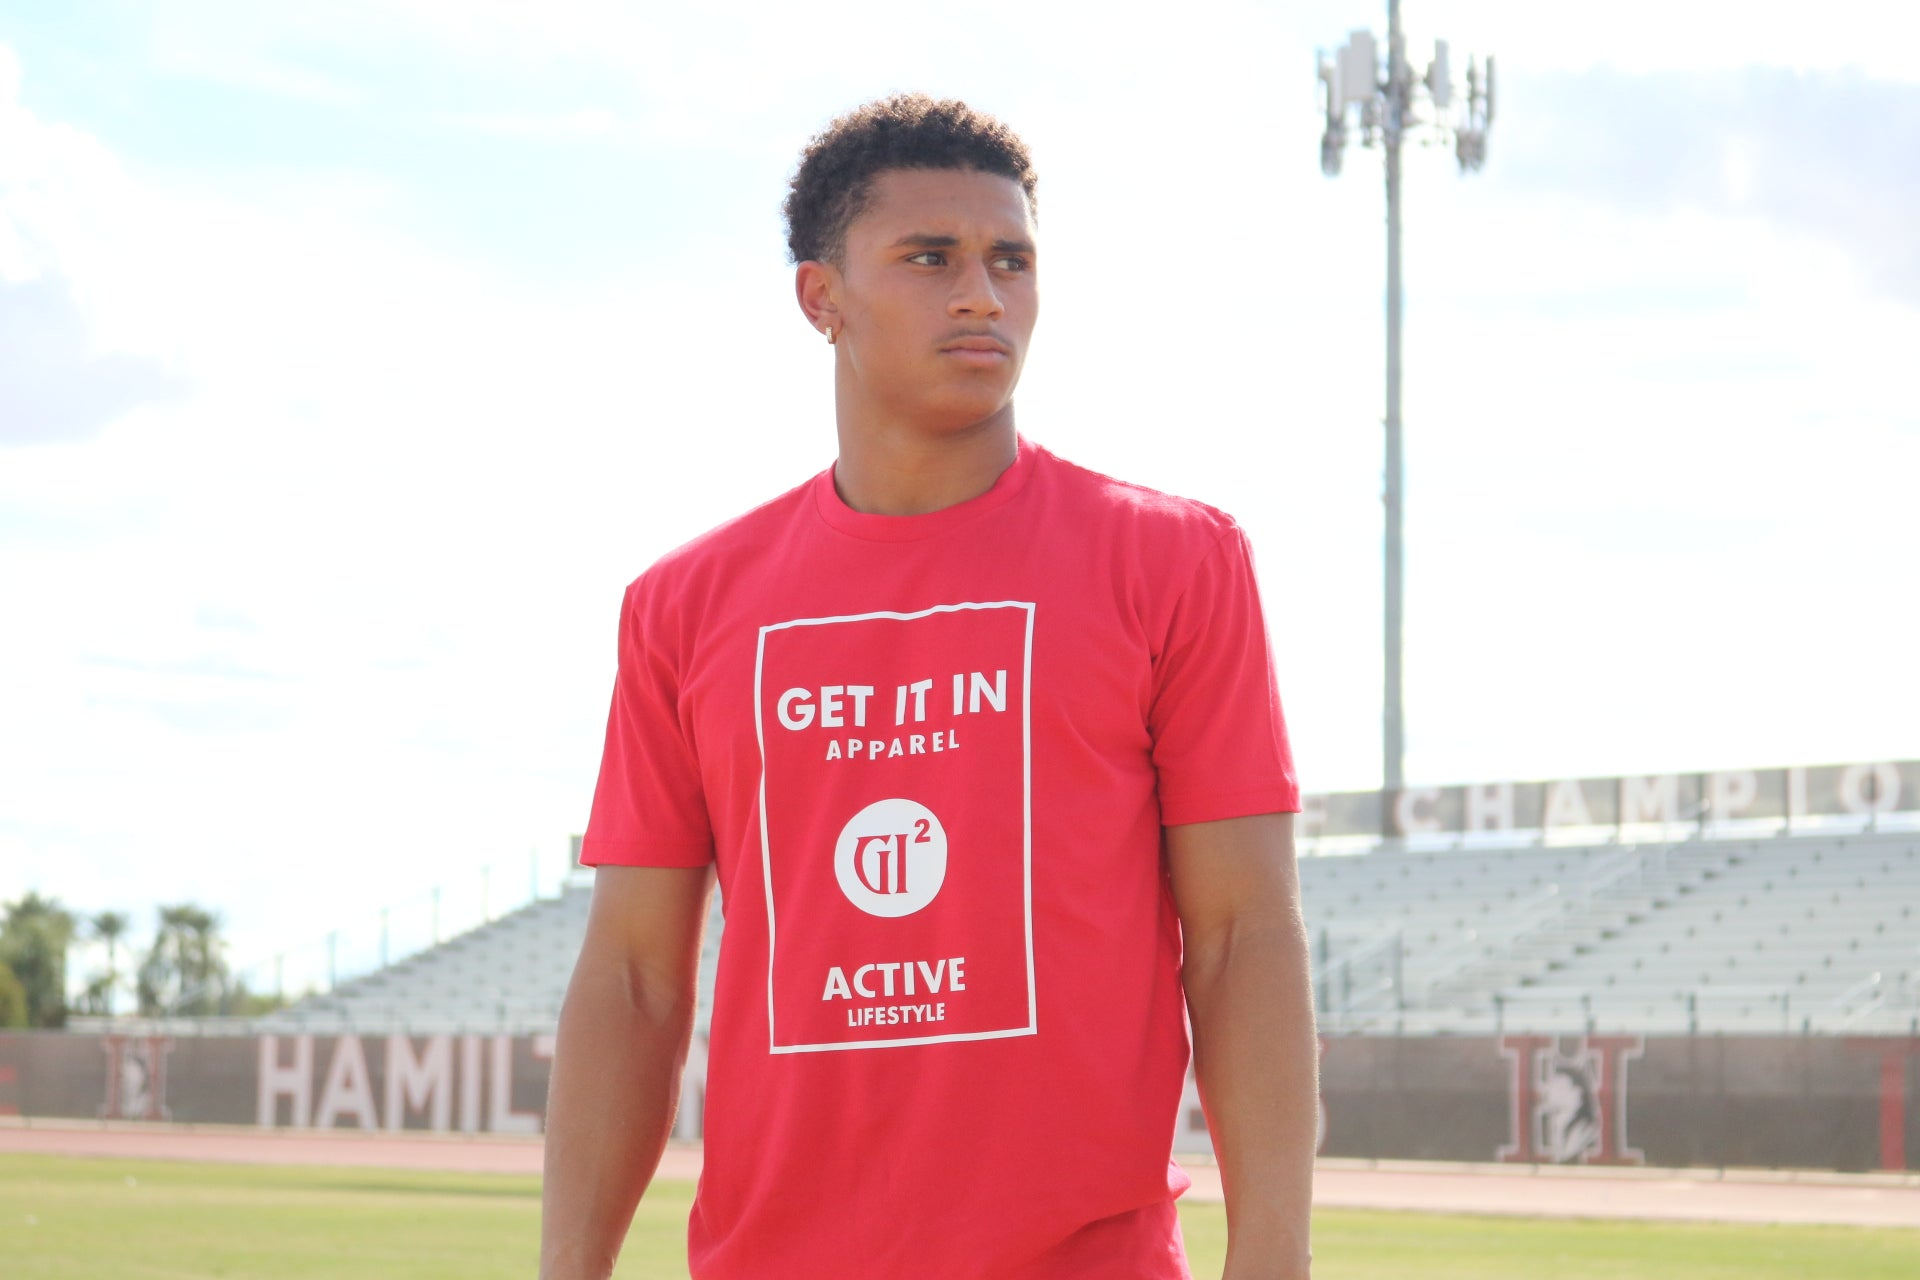 Active Life - GET IT IN Apparel